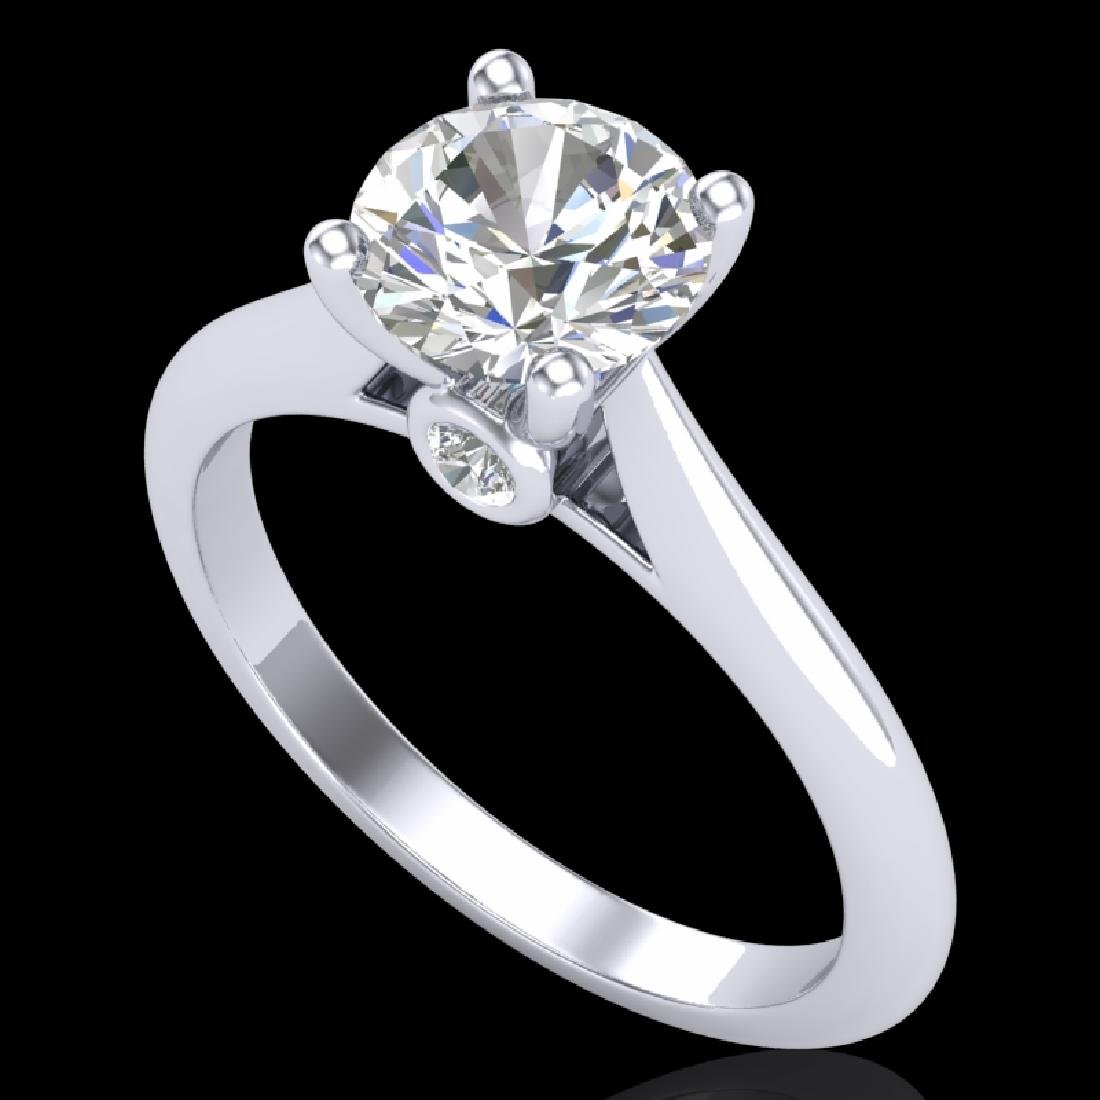 1.36 CTW VS/SI Diamond Solitaire Art Deco Ring 18K